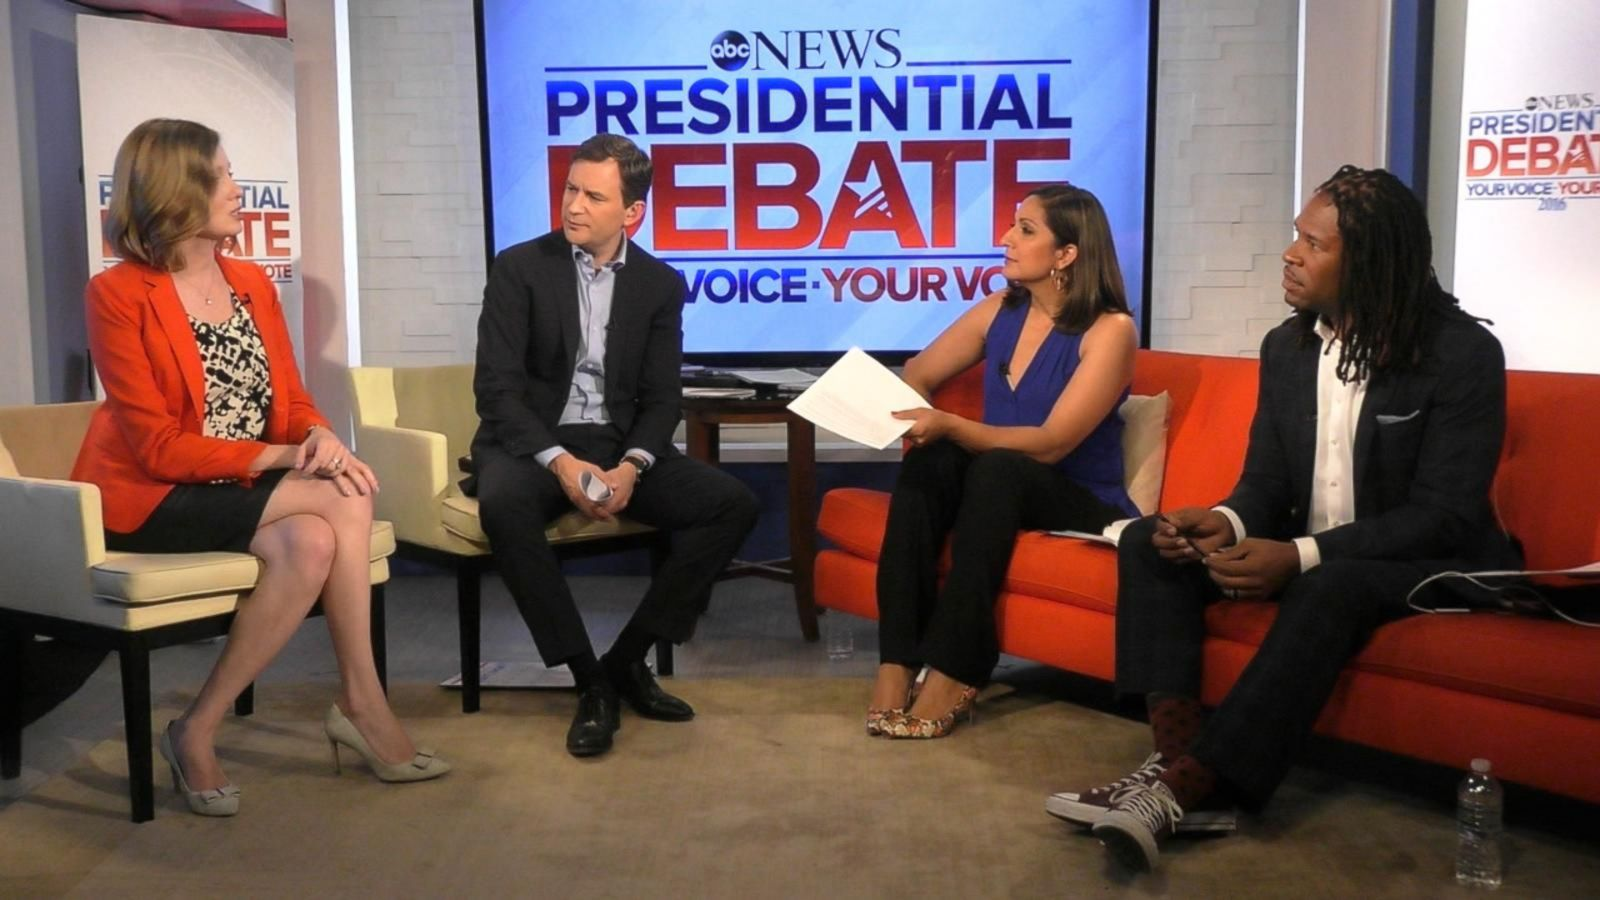 VIDEO: Kristen Soltis Anderson Recaps the Candidates' Performance